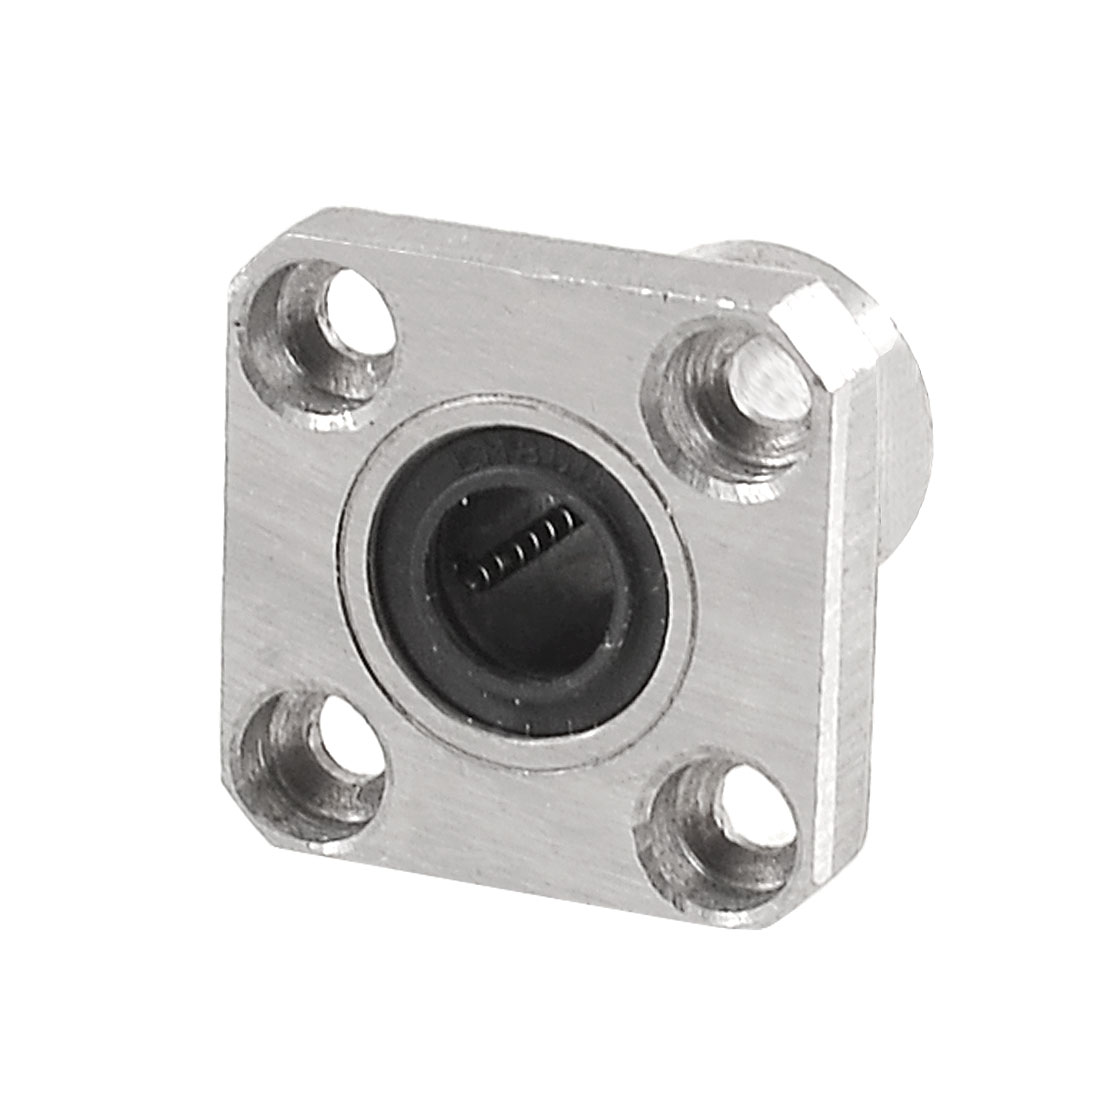 8mm Inner Diameter Square Flange Linear Motion Bushing Ball Bearing LMK8UU